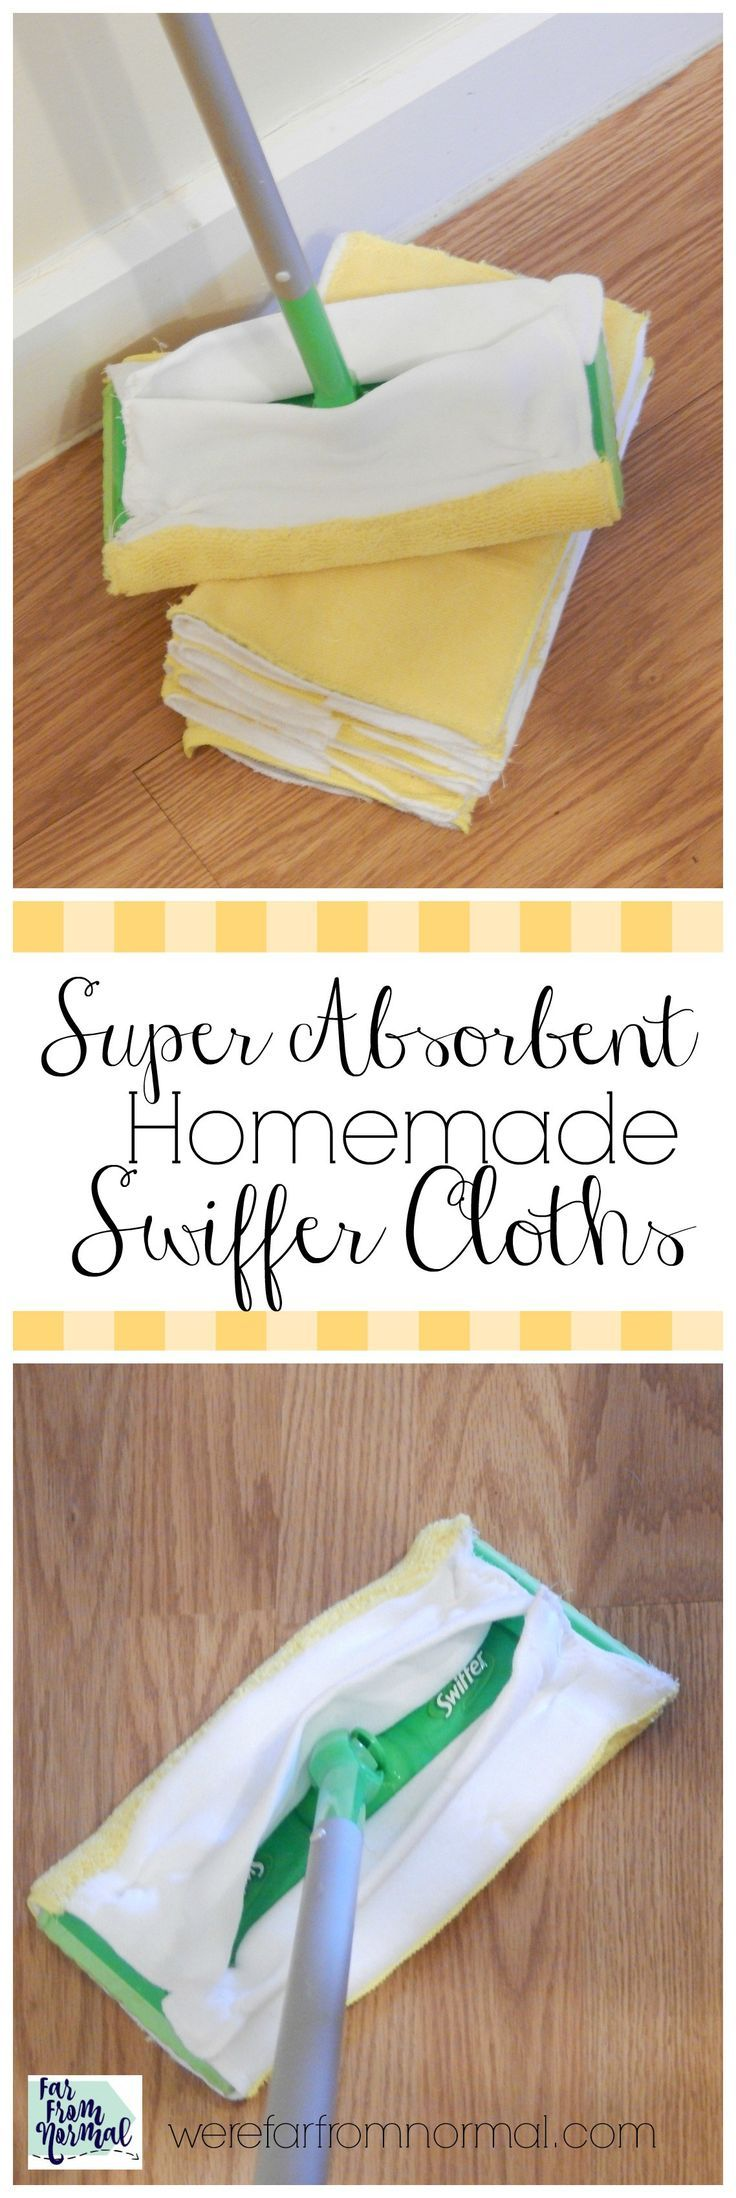 Is keeping your floor clean a challenge? Do you go through disposable floor cloths like crazy?? My homemade Swiffer cloths get the job done and are reusable!   Use your favorite cleaner and have these on hand for any mess!